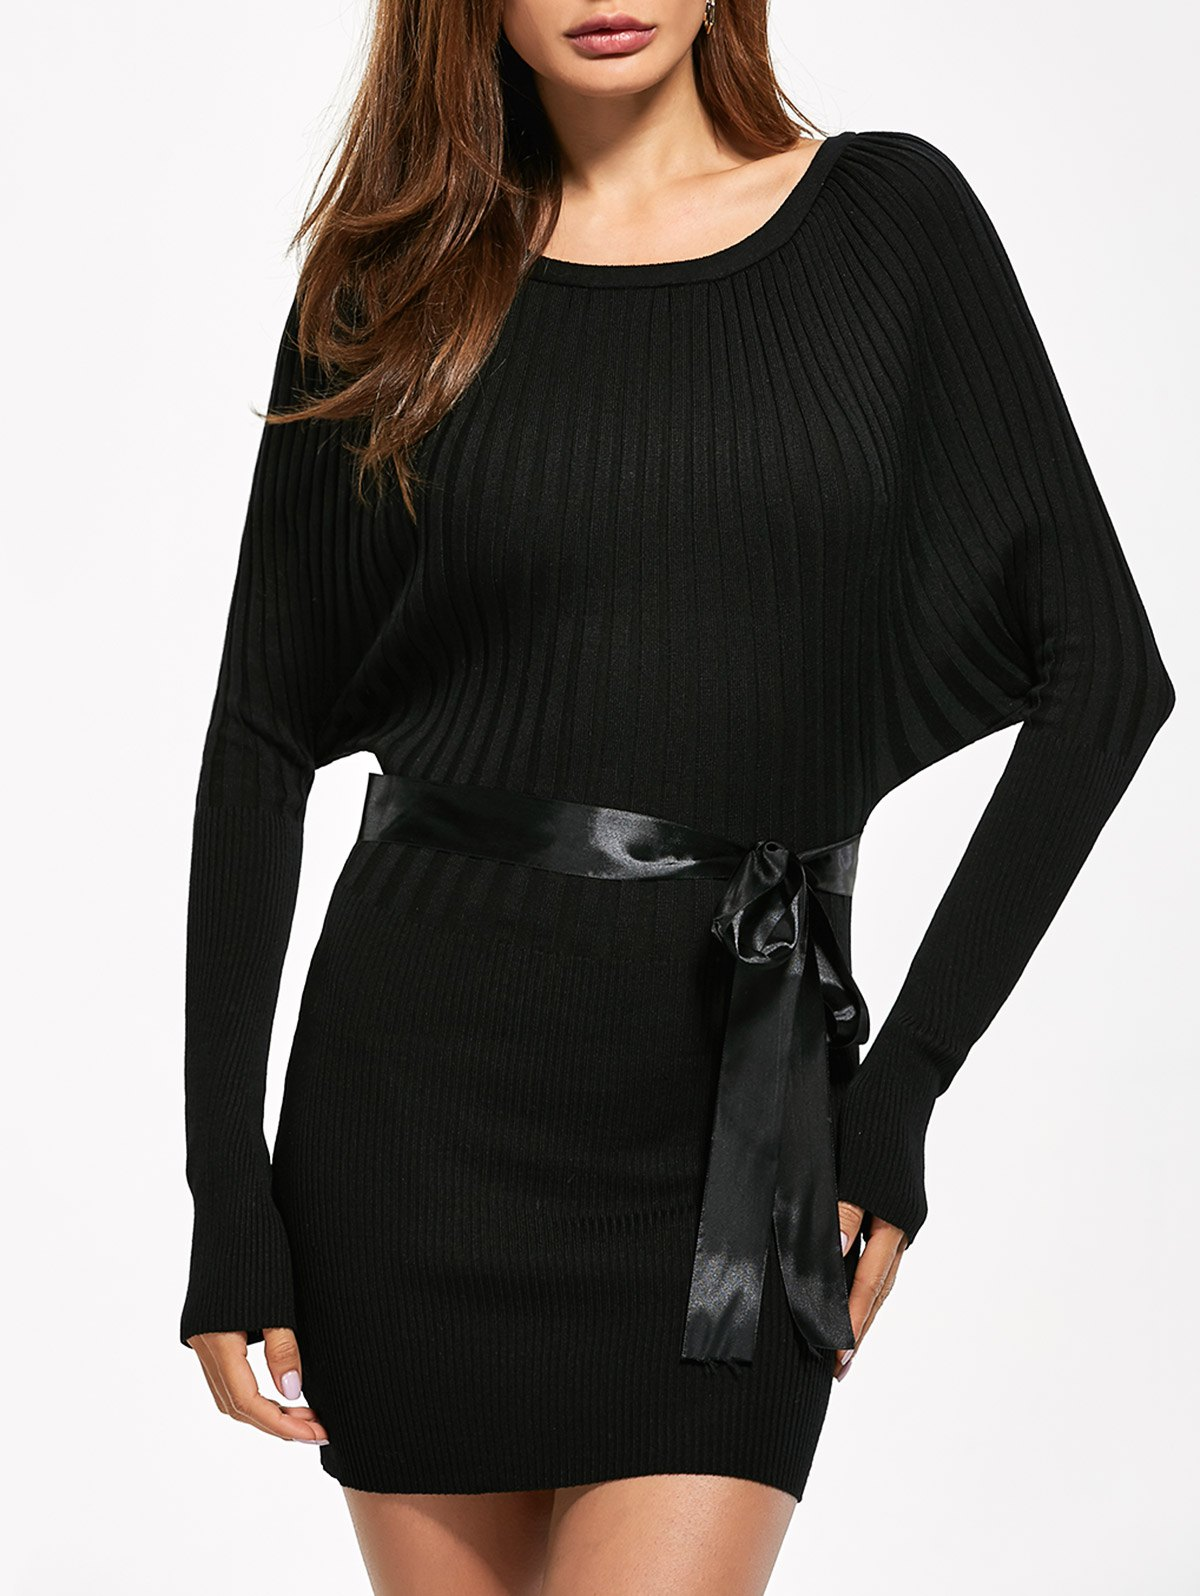 Long Sleeve Bodycon Ribbed Sweater Dress 203408101